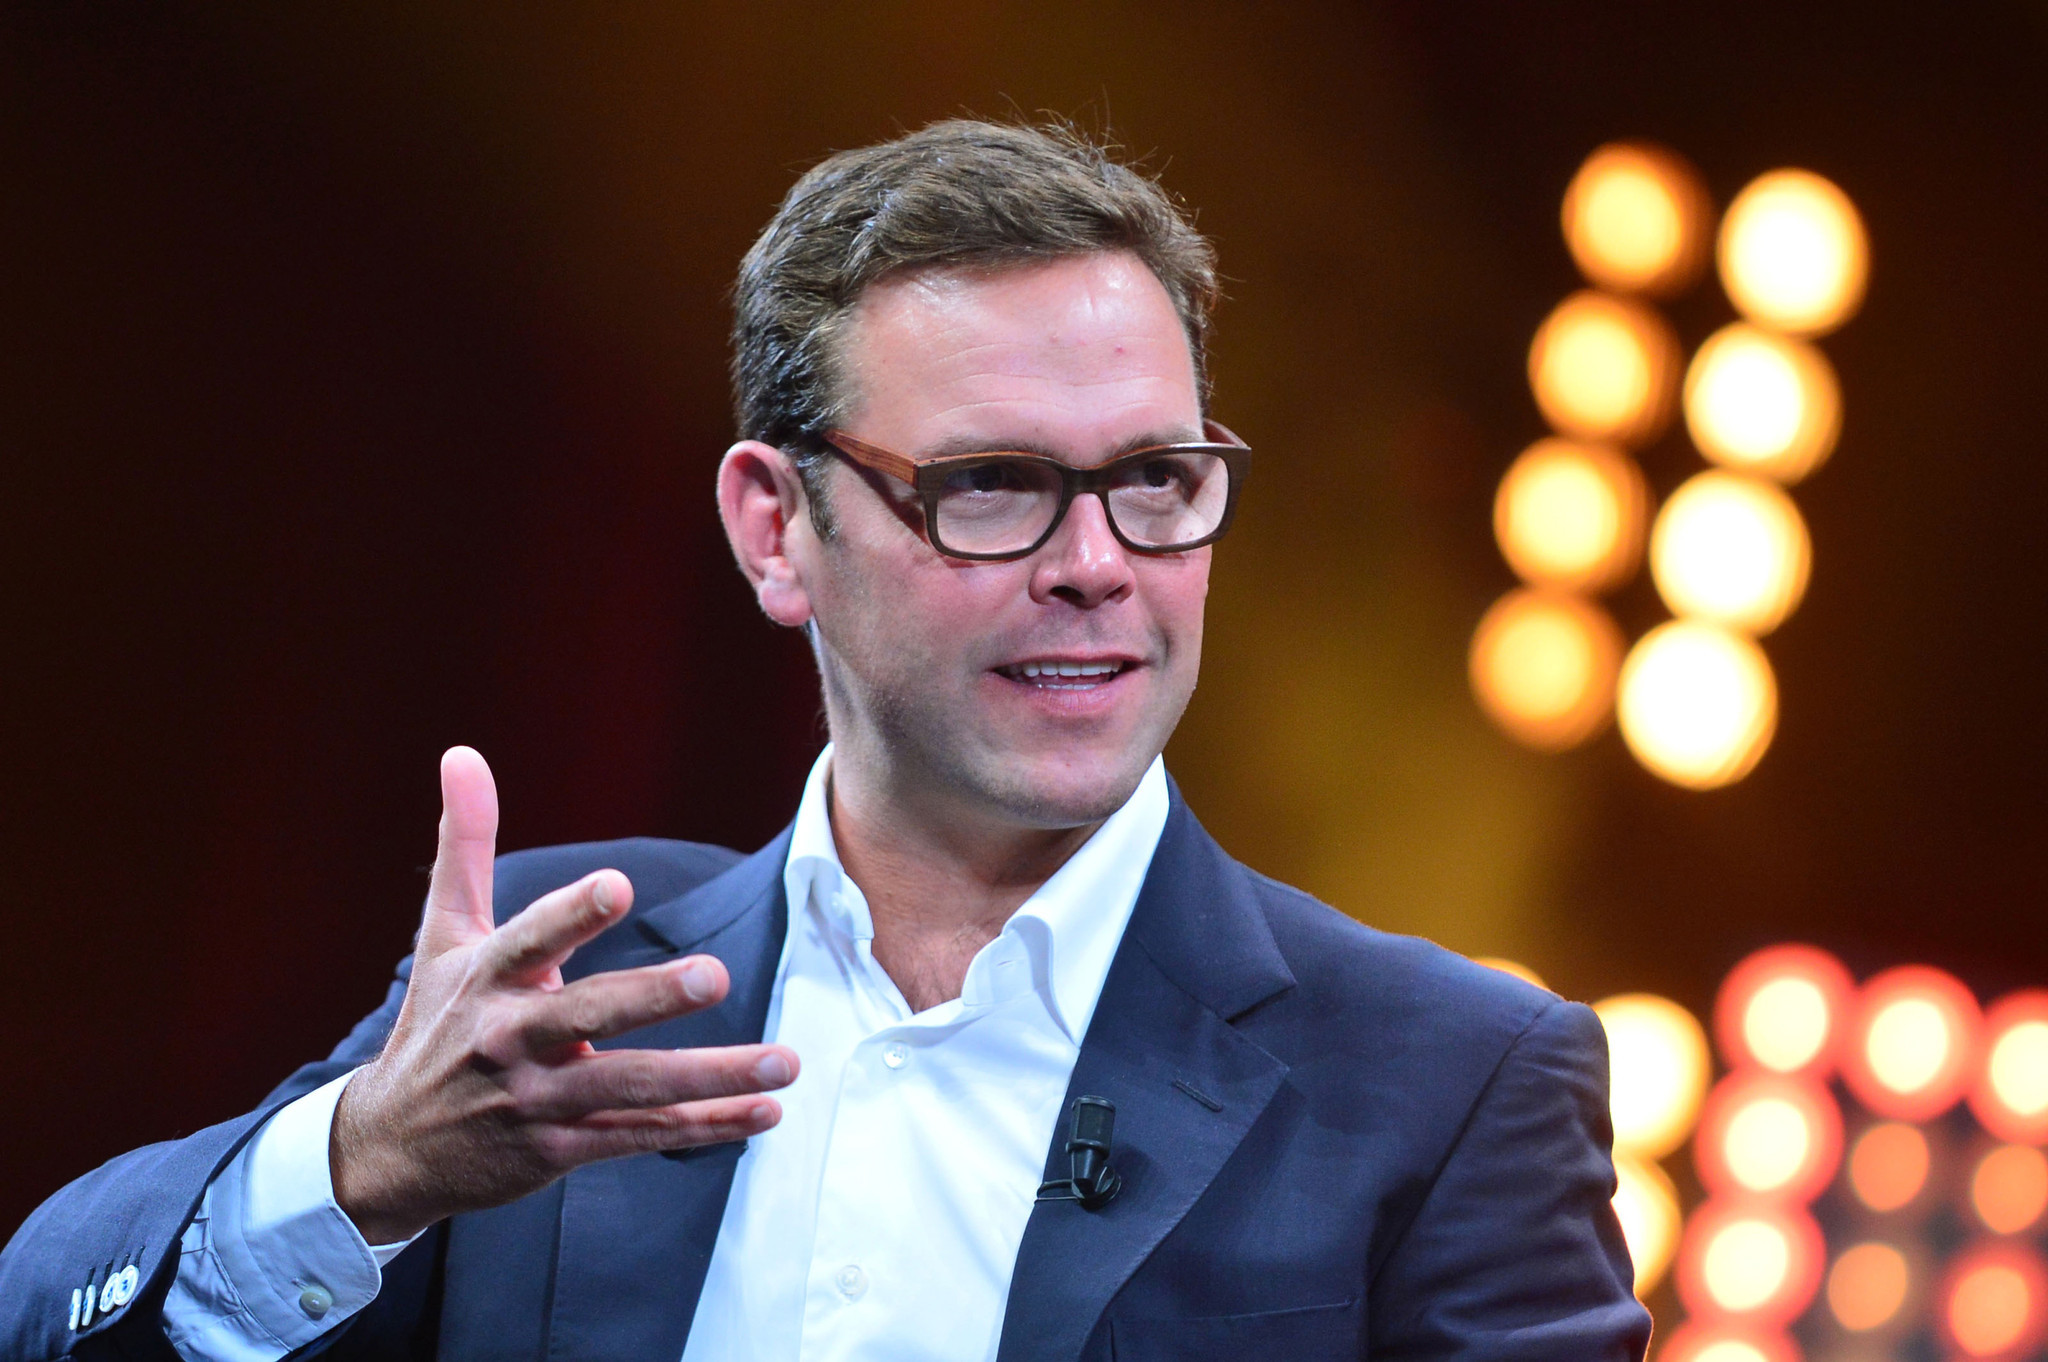 James Murdoch Not Ready To Ditch Cable Tv For Internet